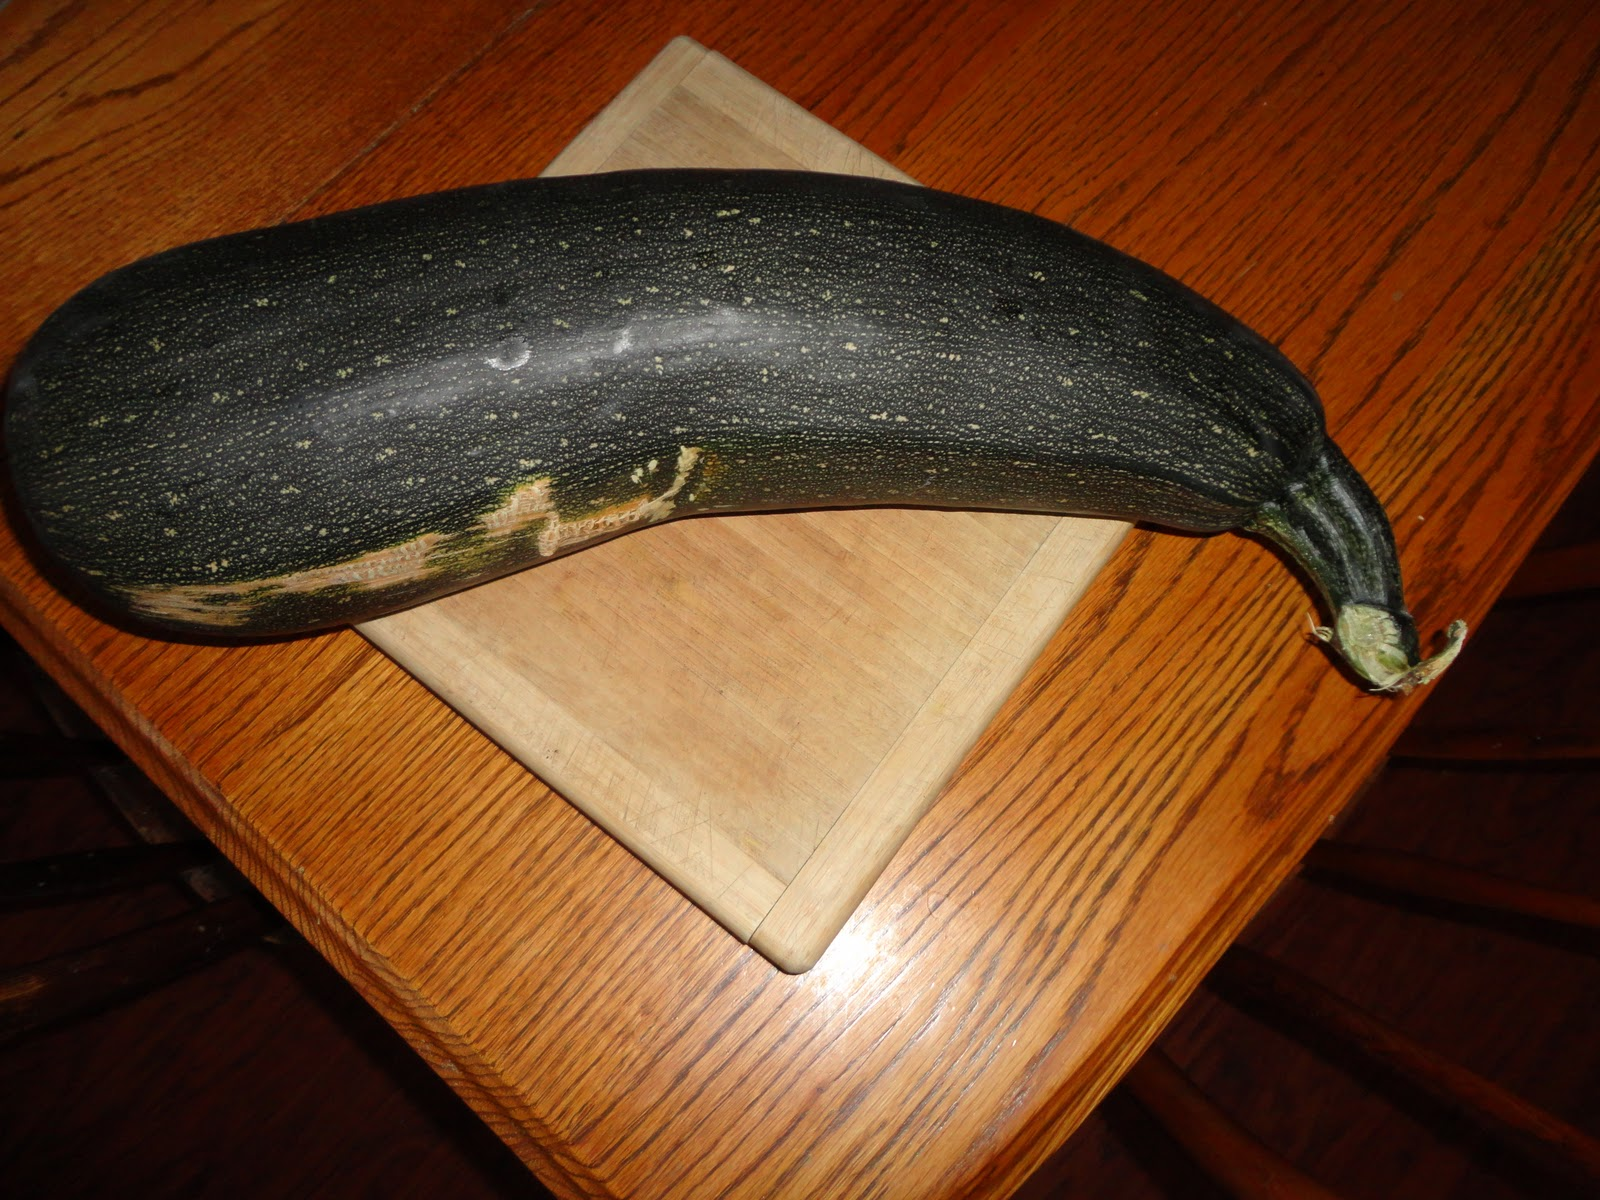 home grown, homemade: attack of the monster zucchini!!!!